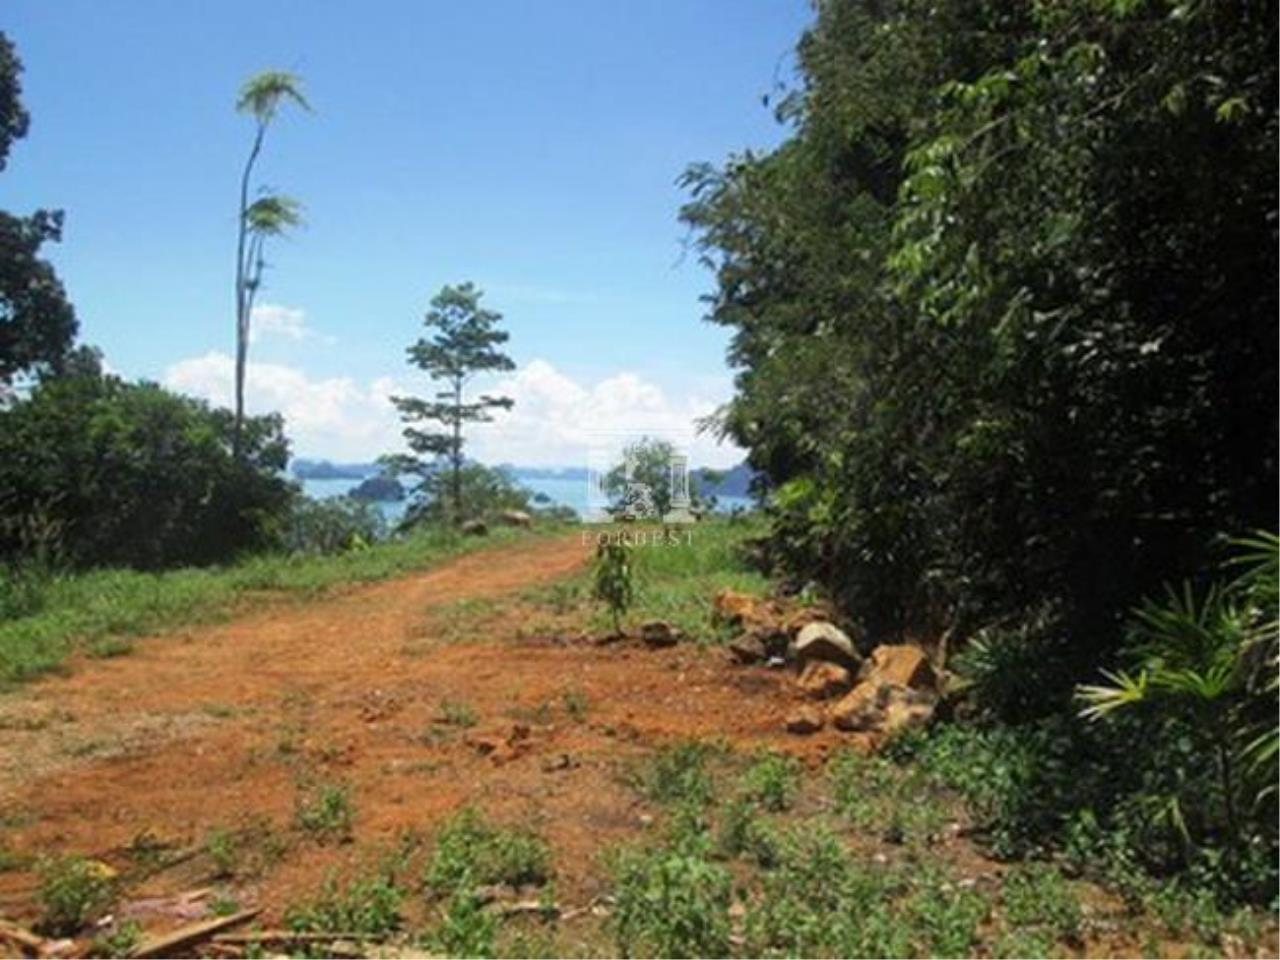 Forbest Properties Agency's 36804-Land for sale, in Krabi province, 9 rai 186.80 sq.wa. 3